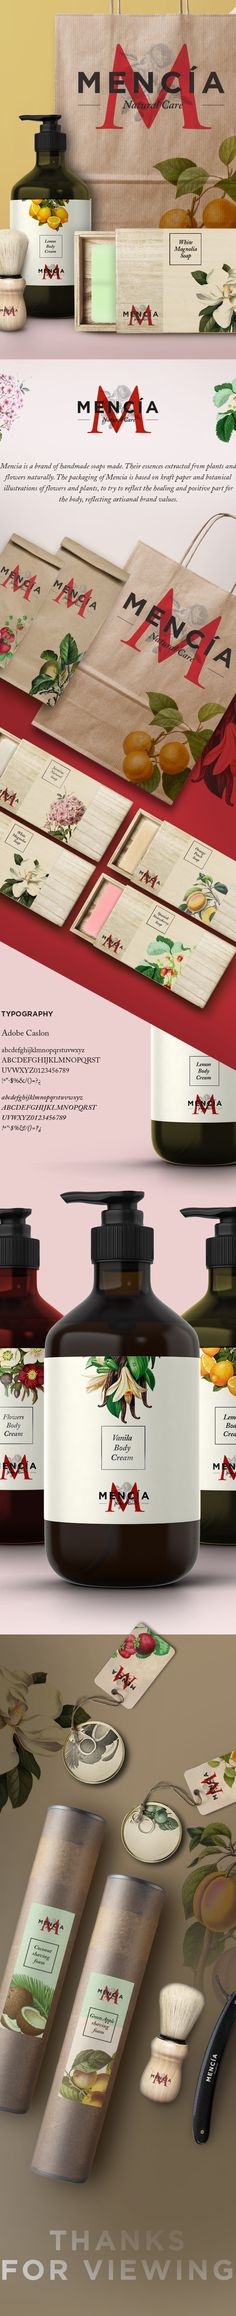 Mencía on Behance - Mencia is a brand of handmade soaps made.